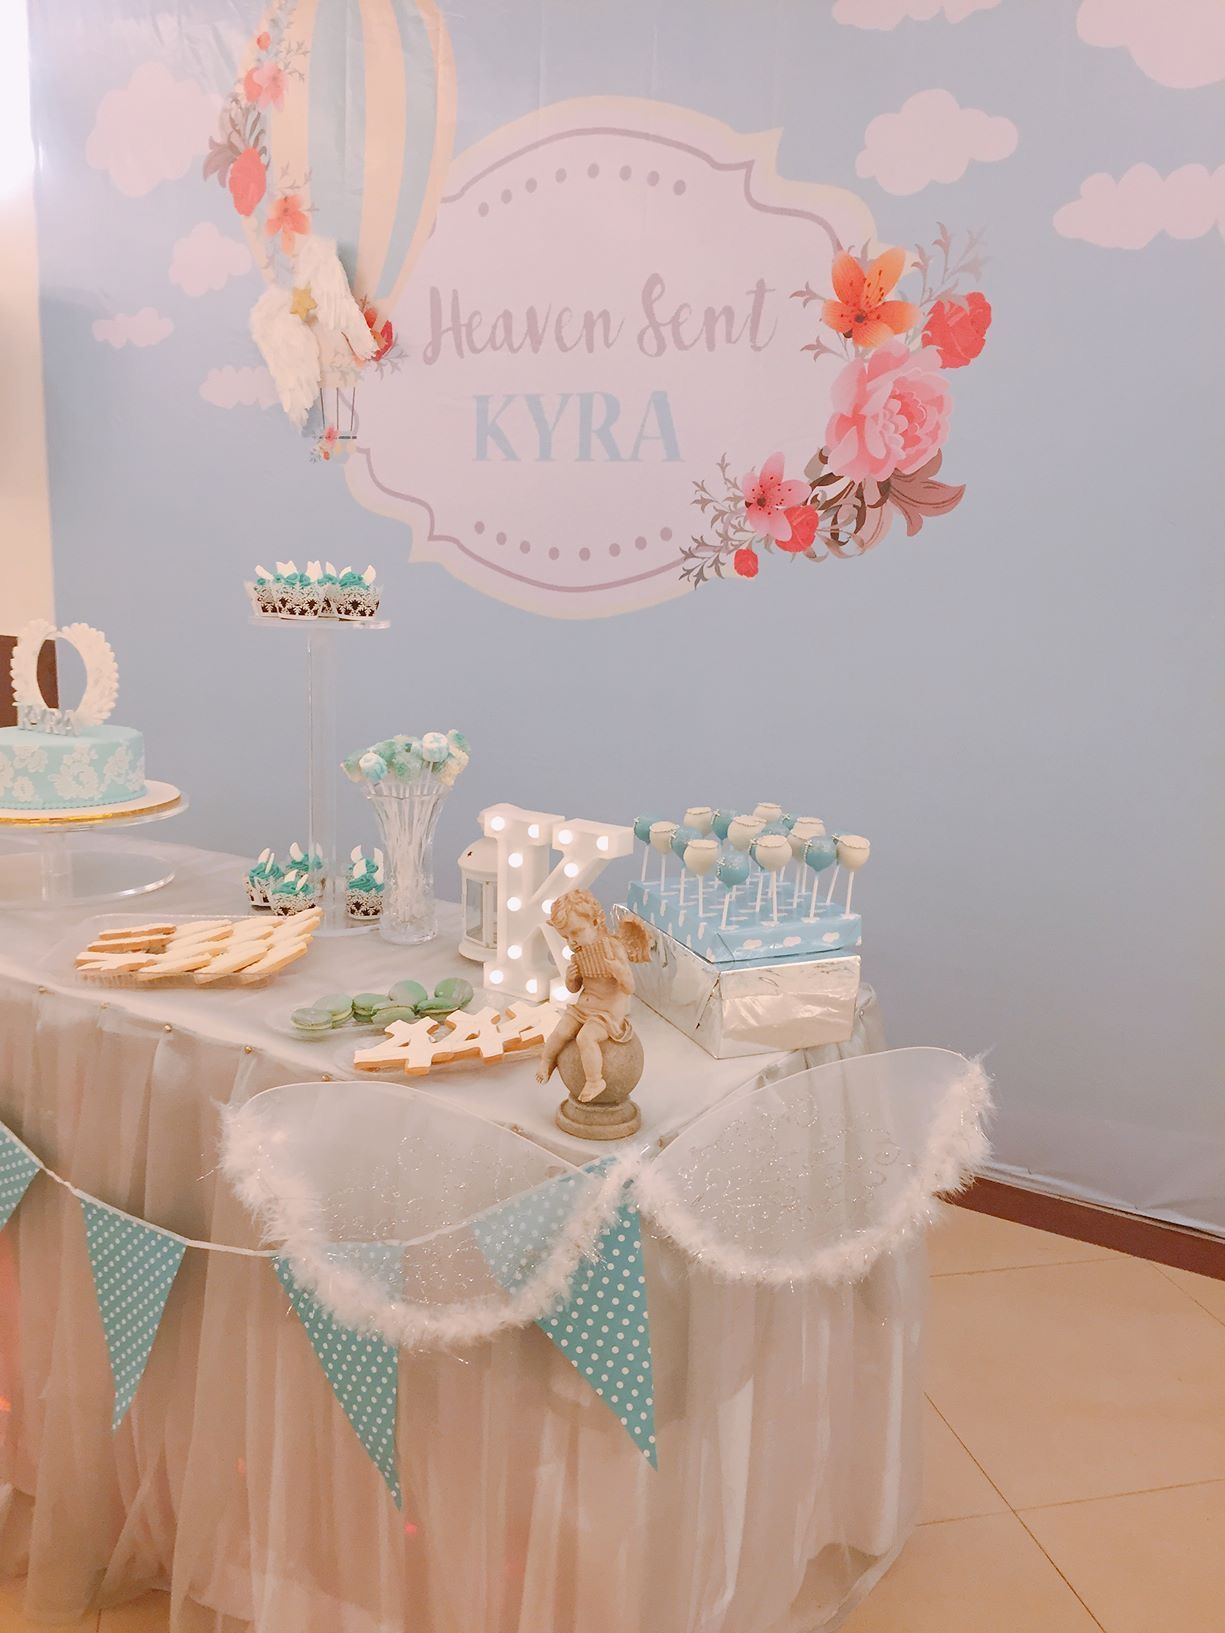 Heaven sent angel backdrop and dessert table